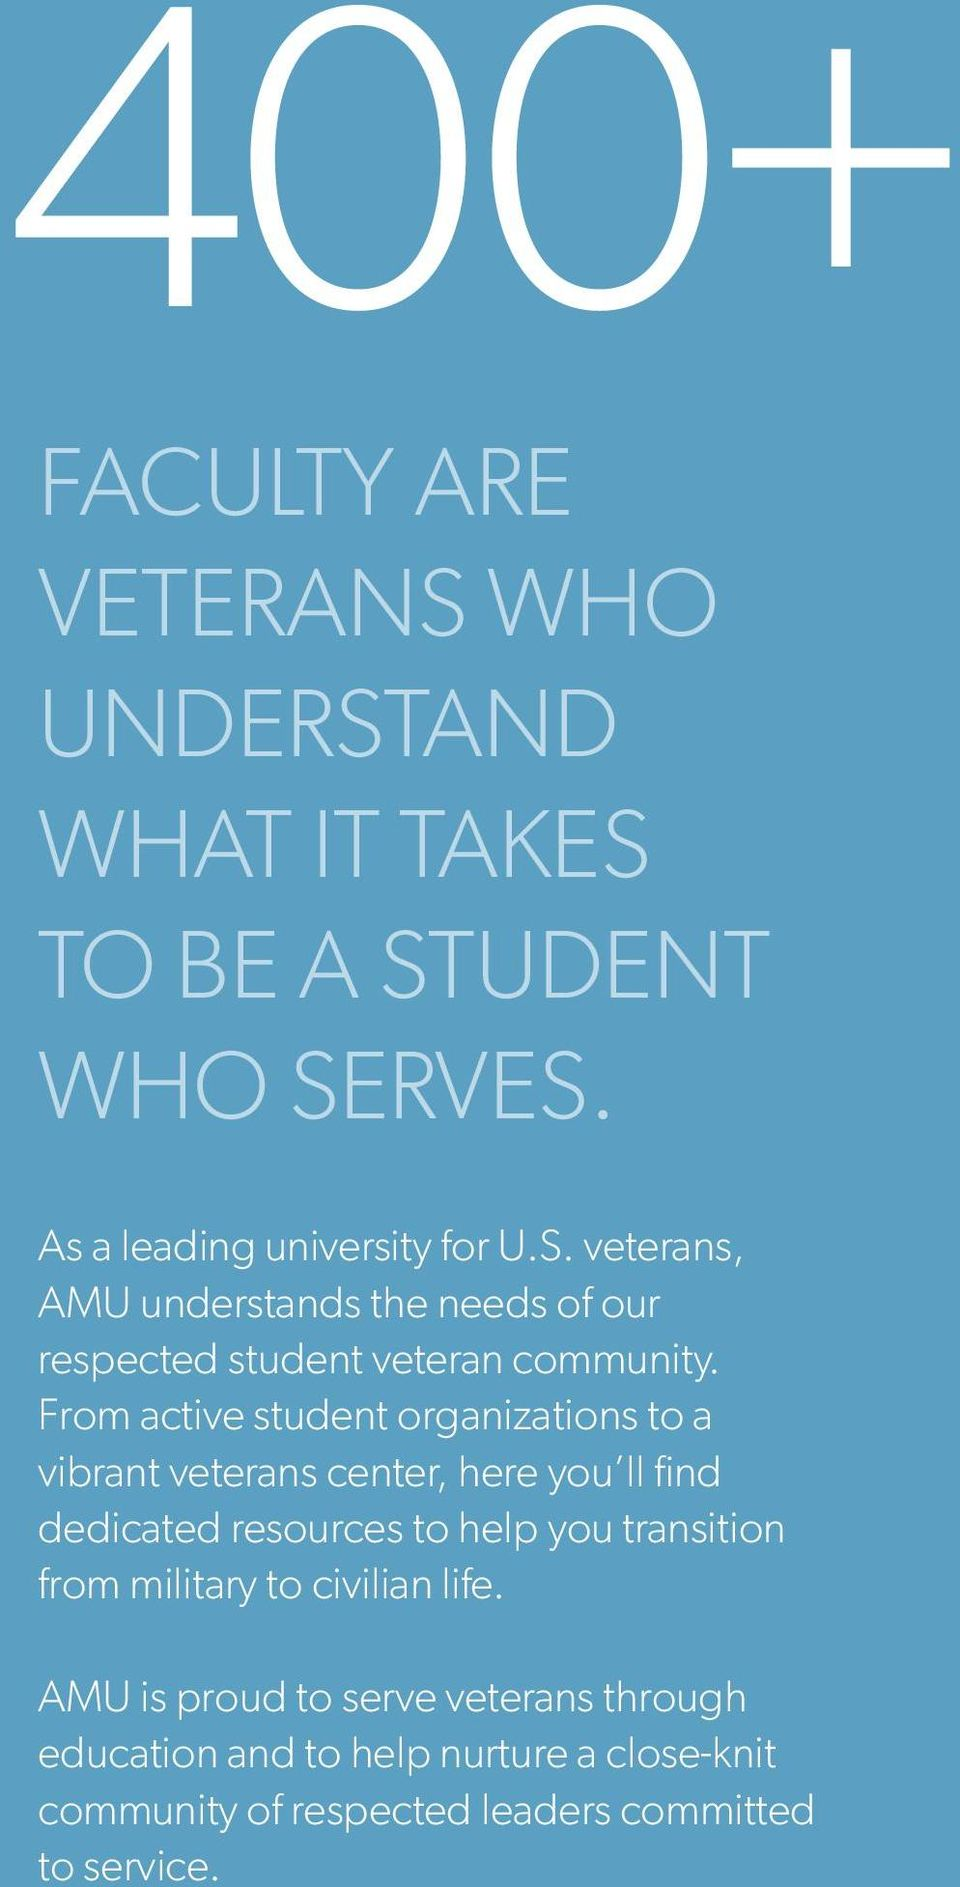 From active student organizations to a vibrant veterans center, here you ll find dedicated resources to help you